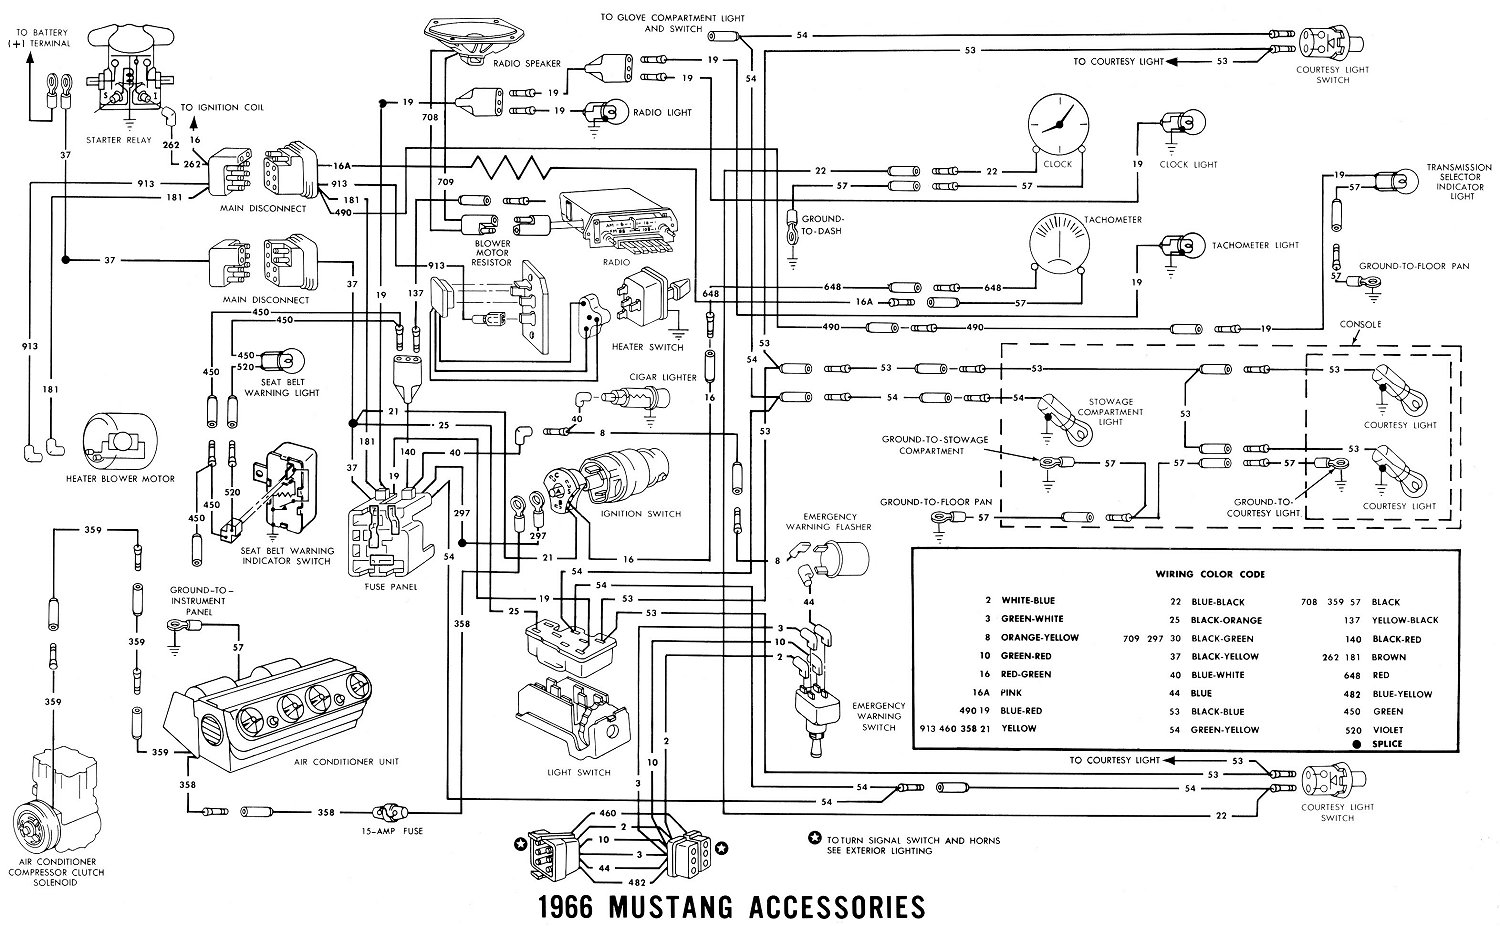 1966 Ford Mustang Accessories Wiring Diagram 1968 ford f100 wiring diagram 1965 ford f100 alternator wiring 1966 ford truck wiring diagram at eliteediting.co